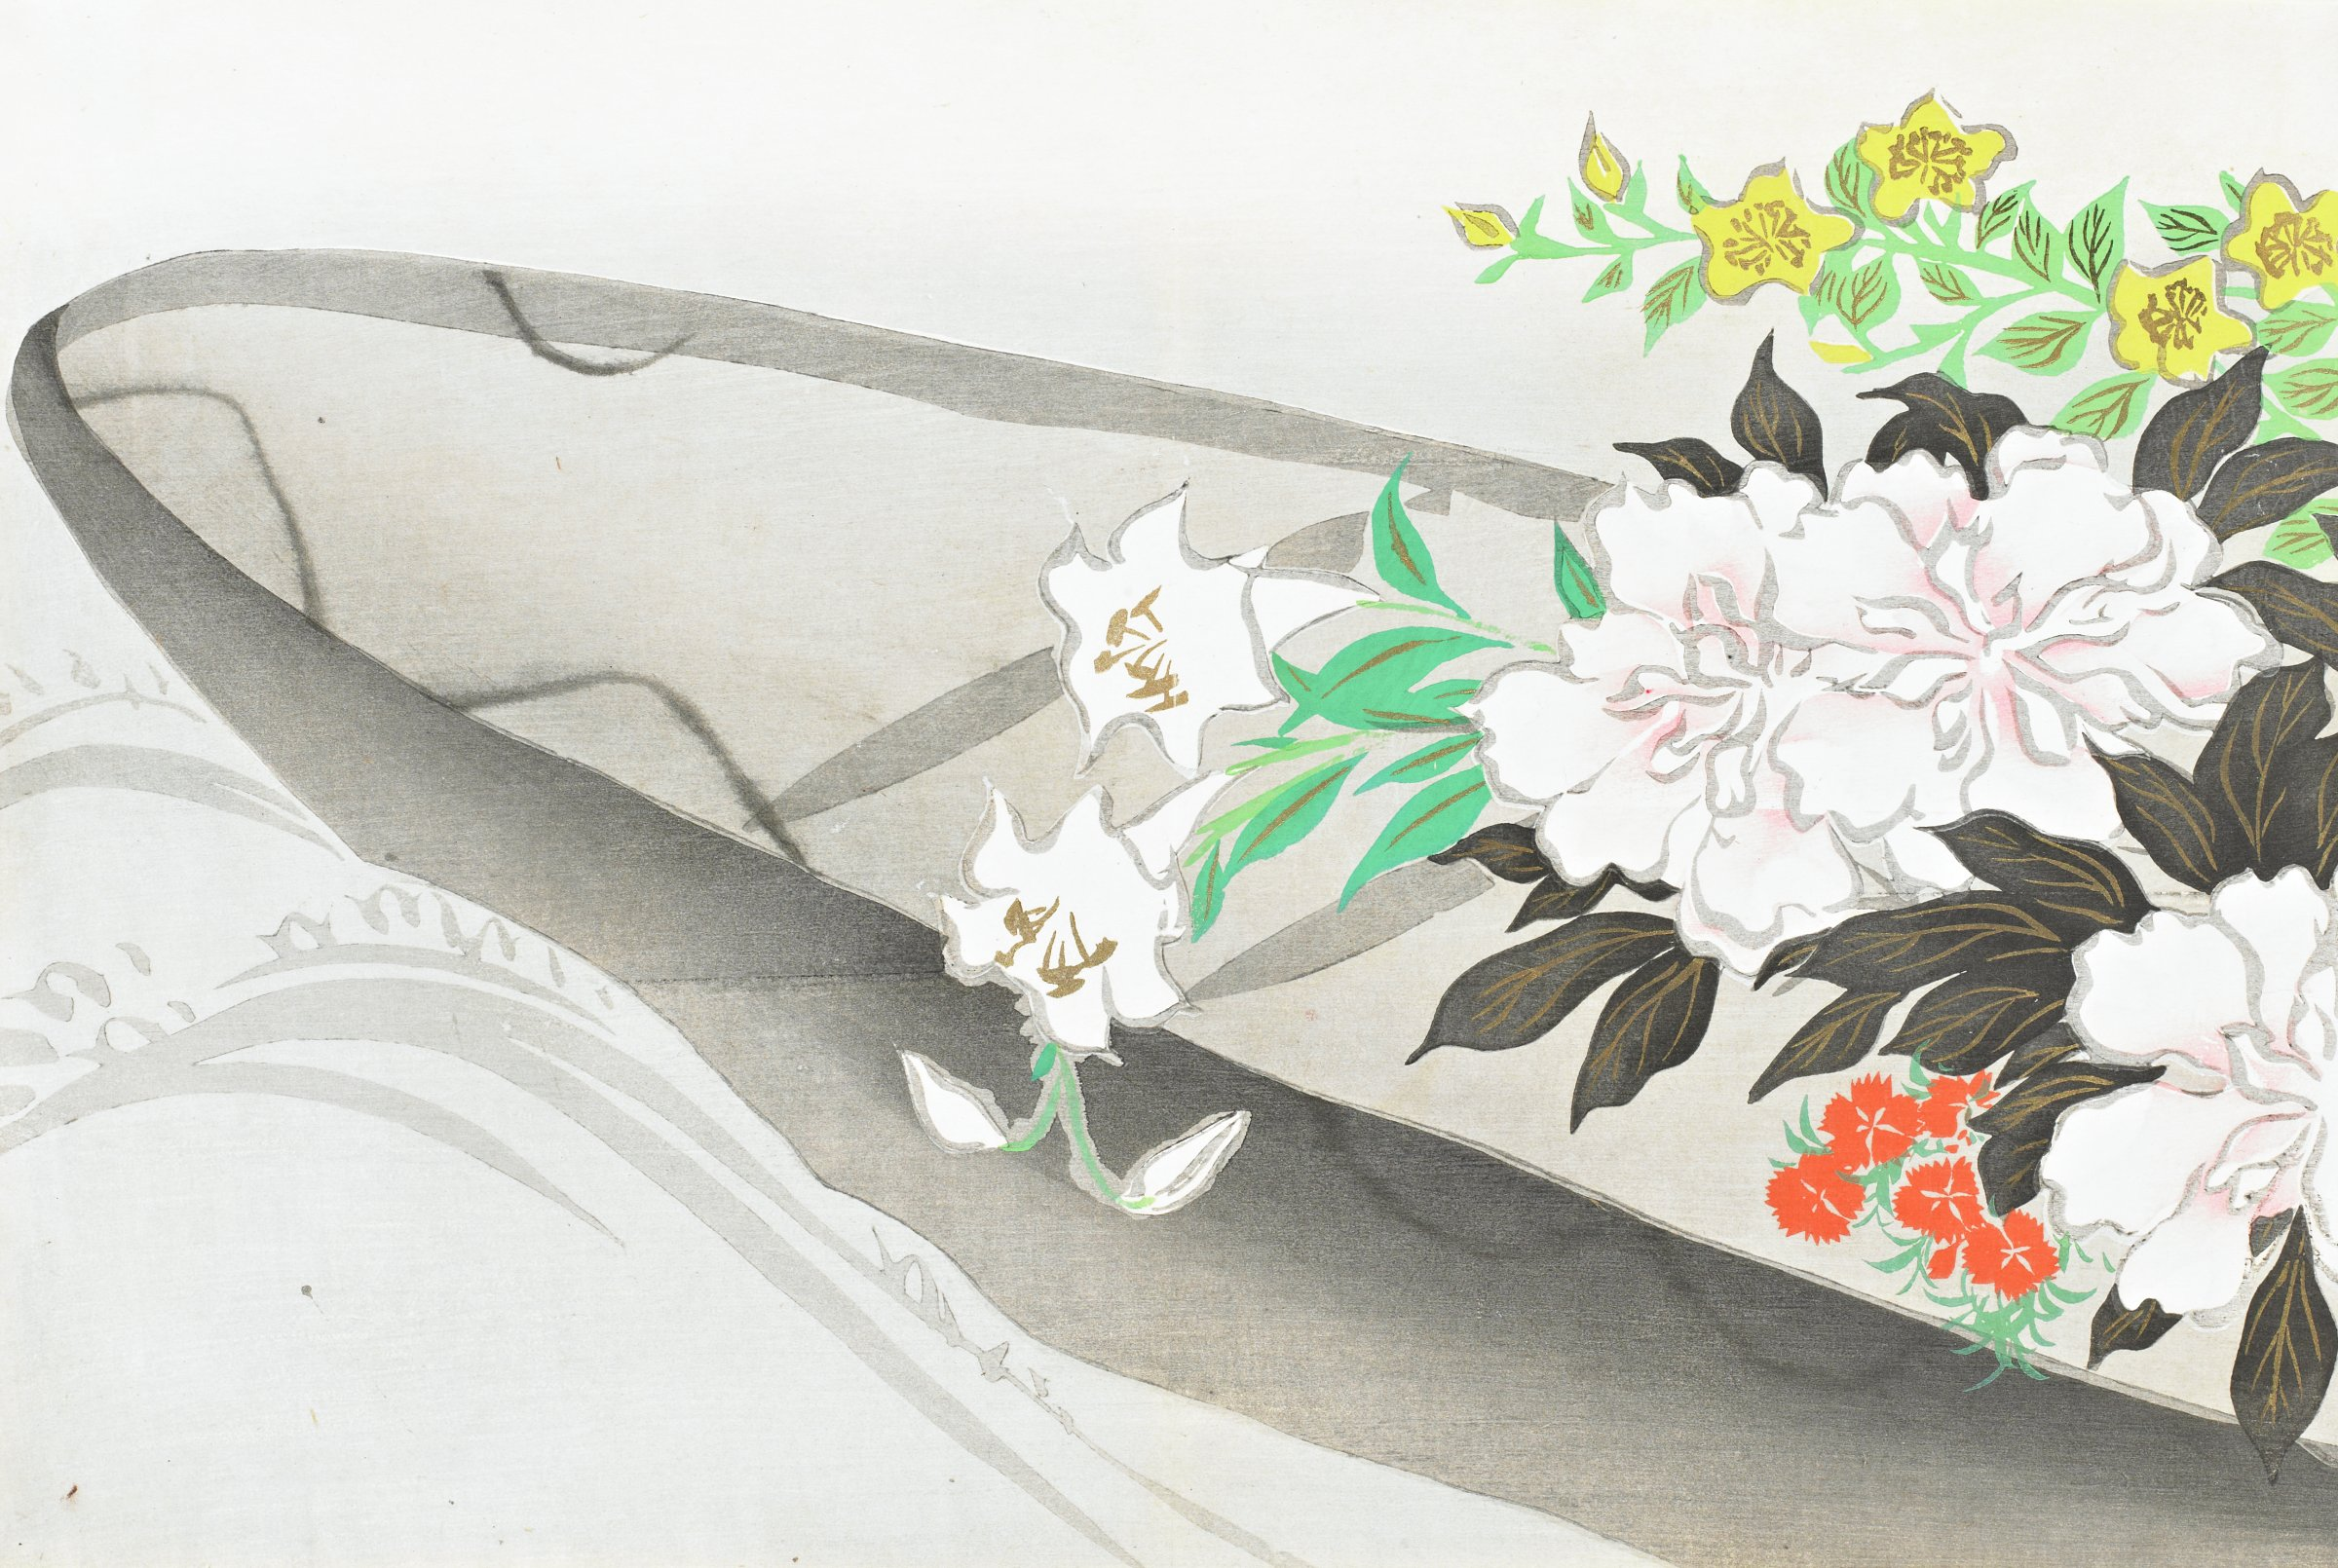 Hanabune (Flower Boat), from Momoyogusa (A World of Things), Volume 3, Kamisaka Sekka, ink and color on paper